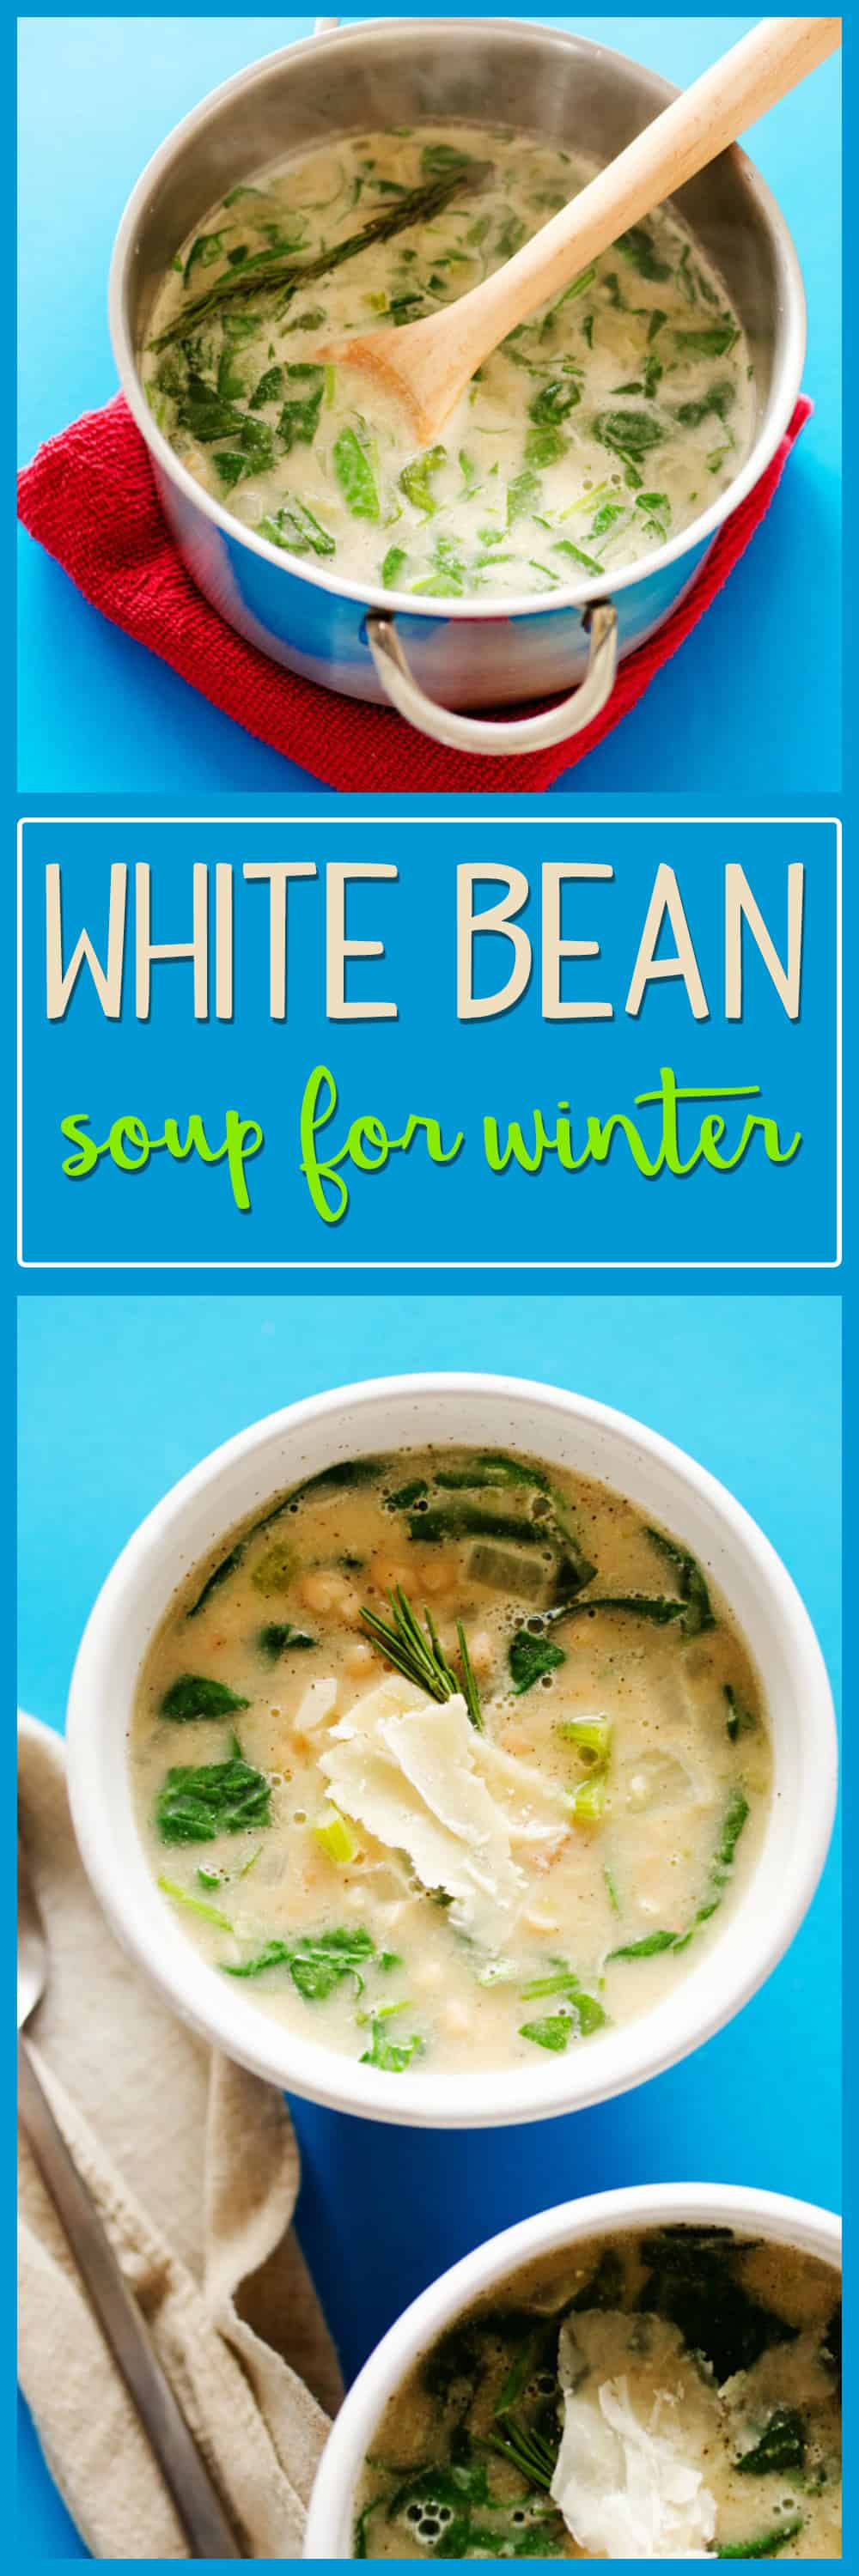 Easy White Bean Soup - definitely one to make! I am looking for all sorts of soup recipes now that the snow is flying. I'll definitely be making this easy white bean soup!